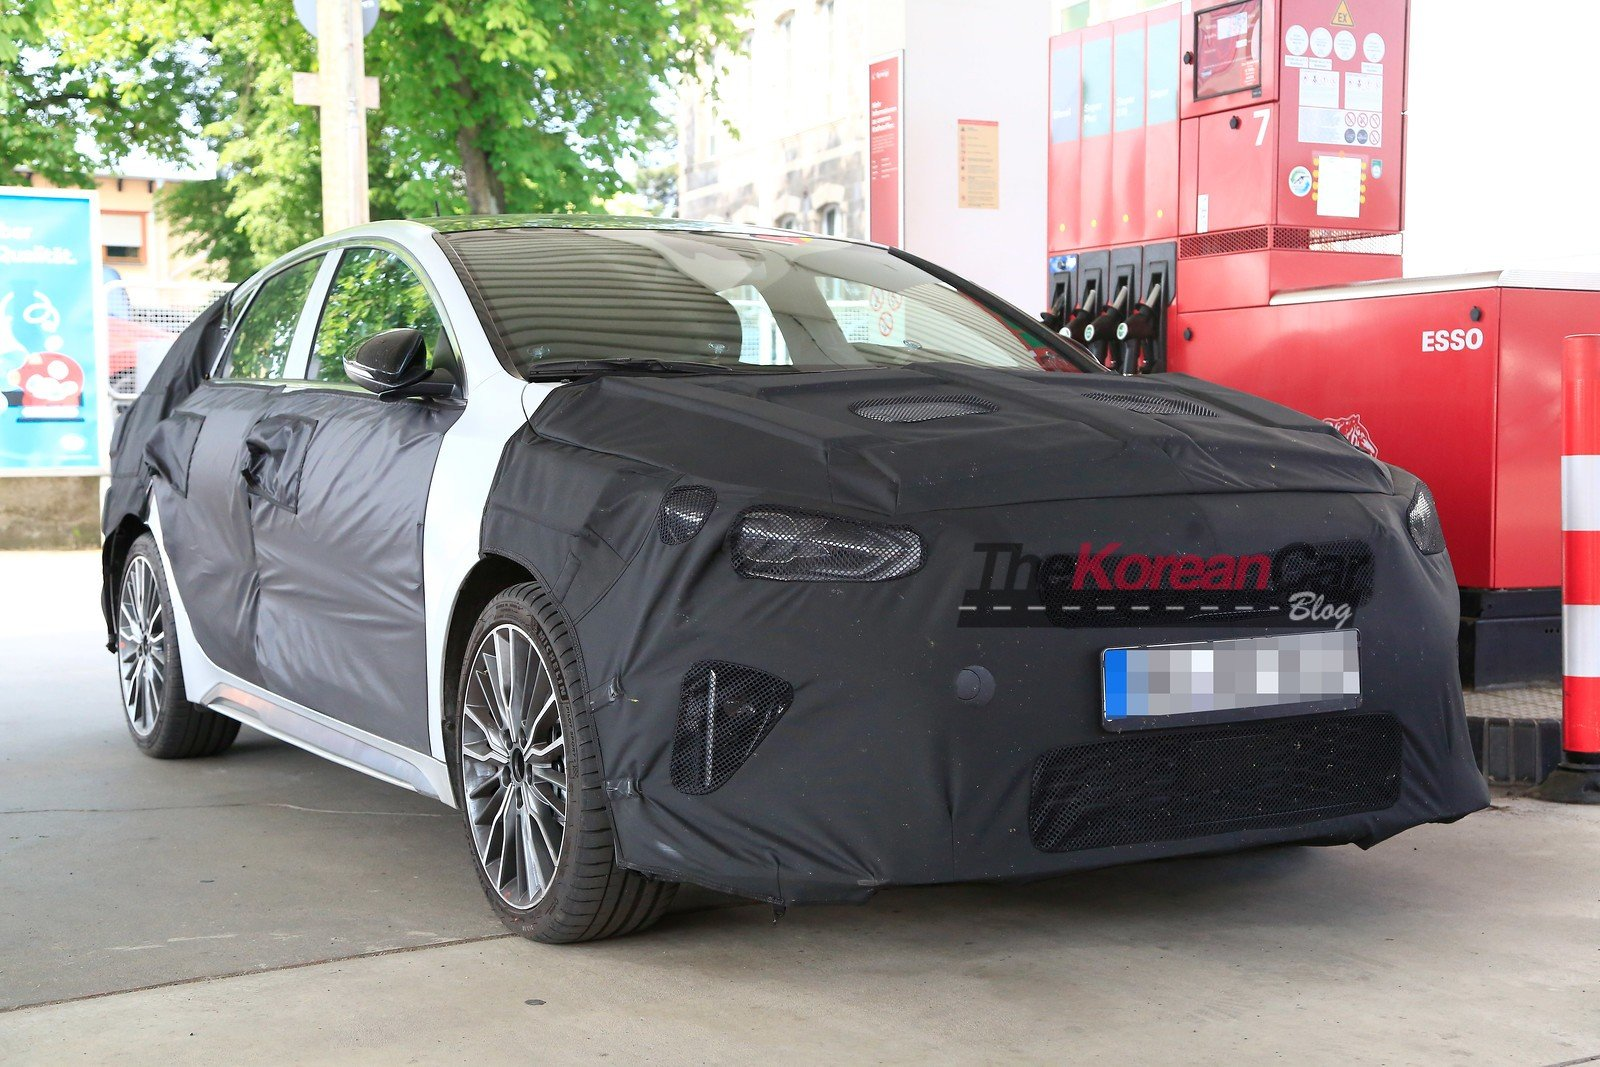 2019 Kia Ceed Shooting Brake spied for the first time